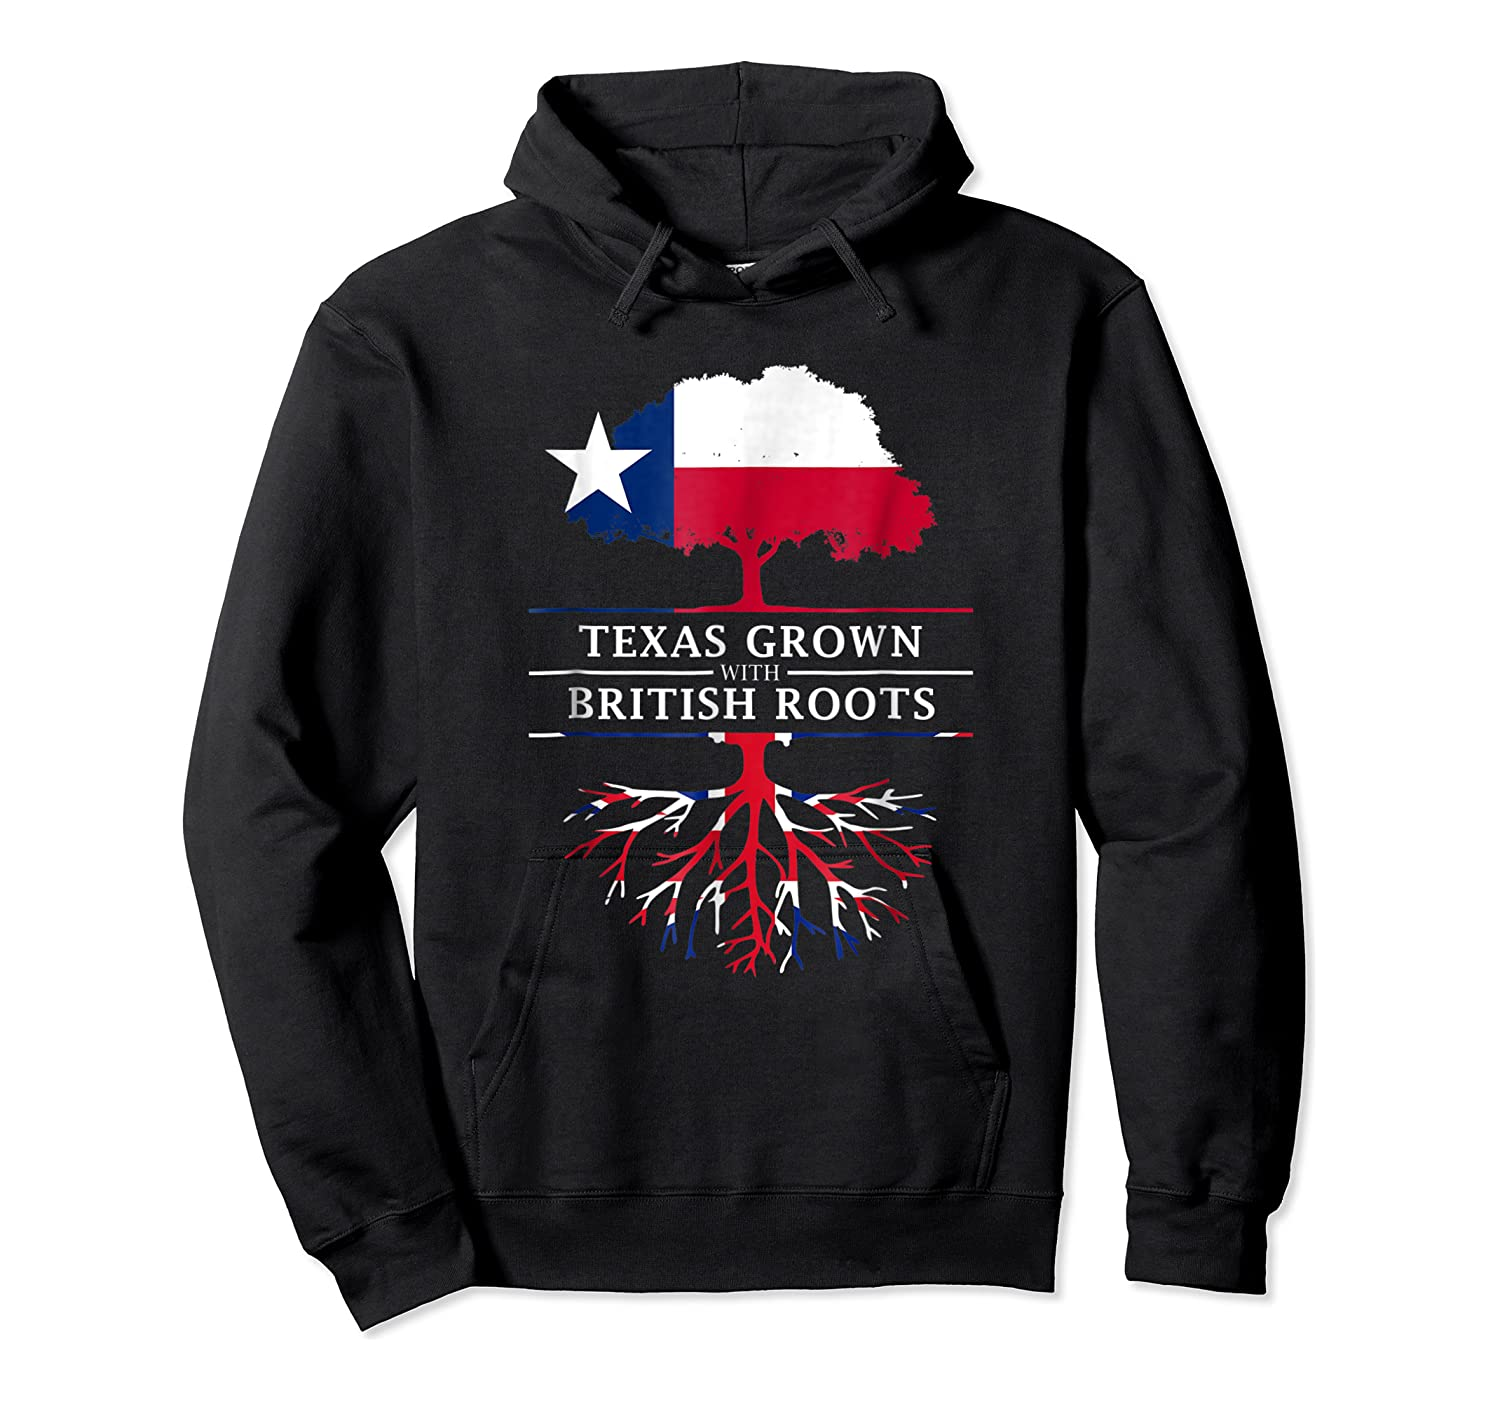 Texas Grown With British Roots Britain Shirts Unisex Pullover Hoodie